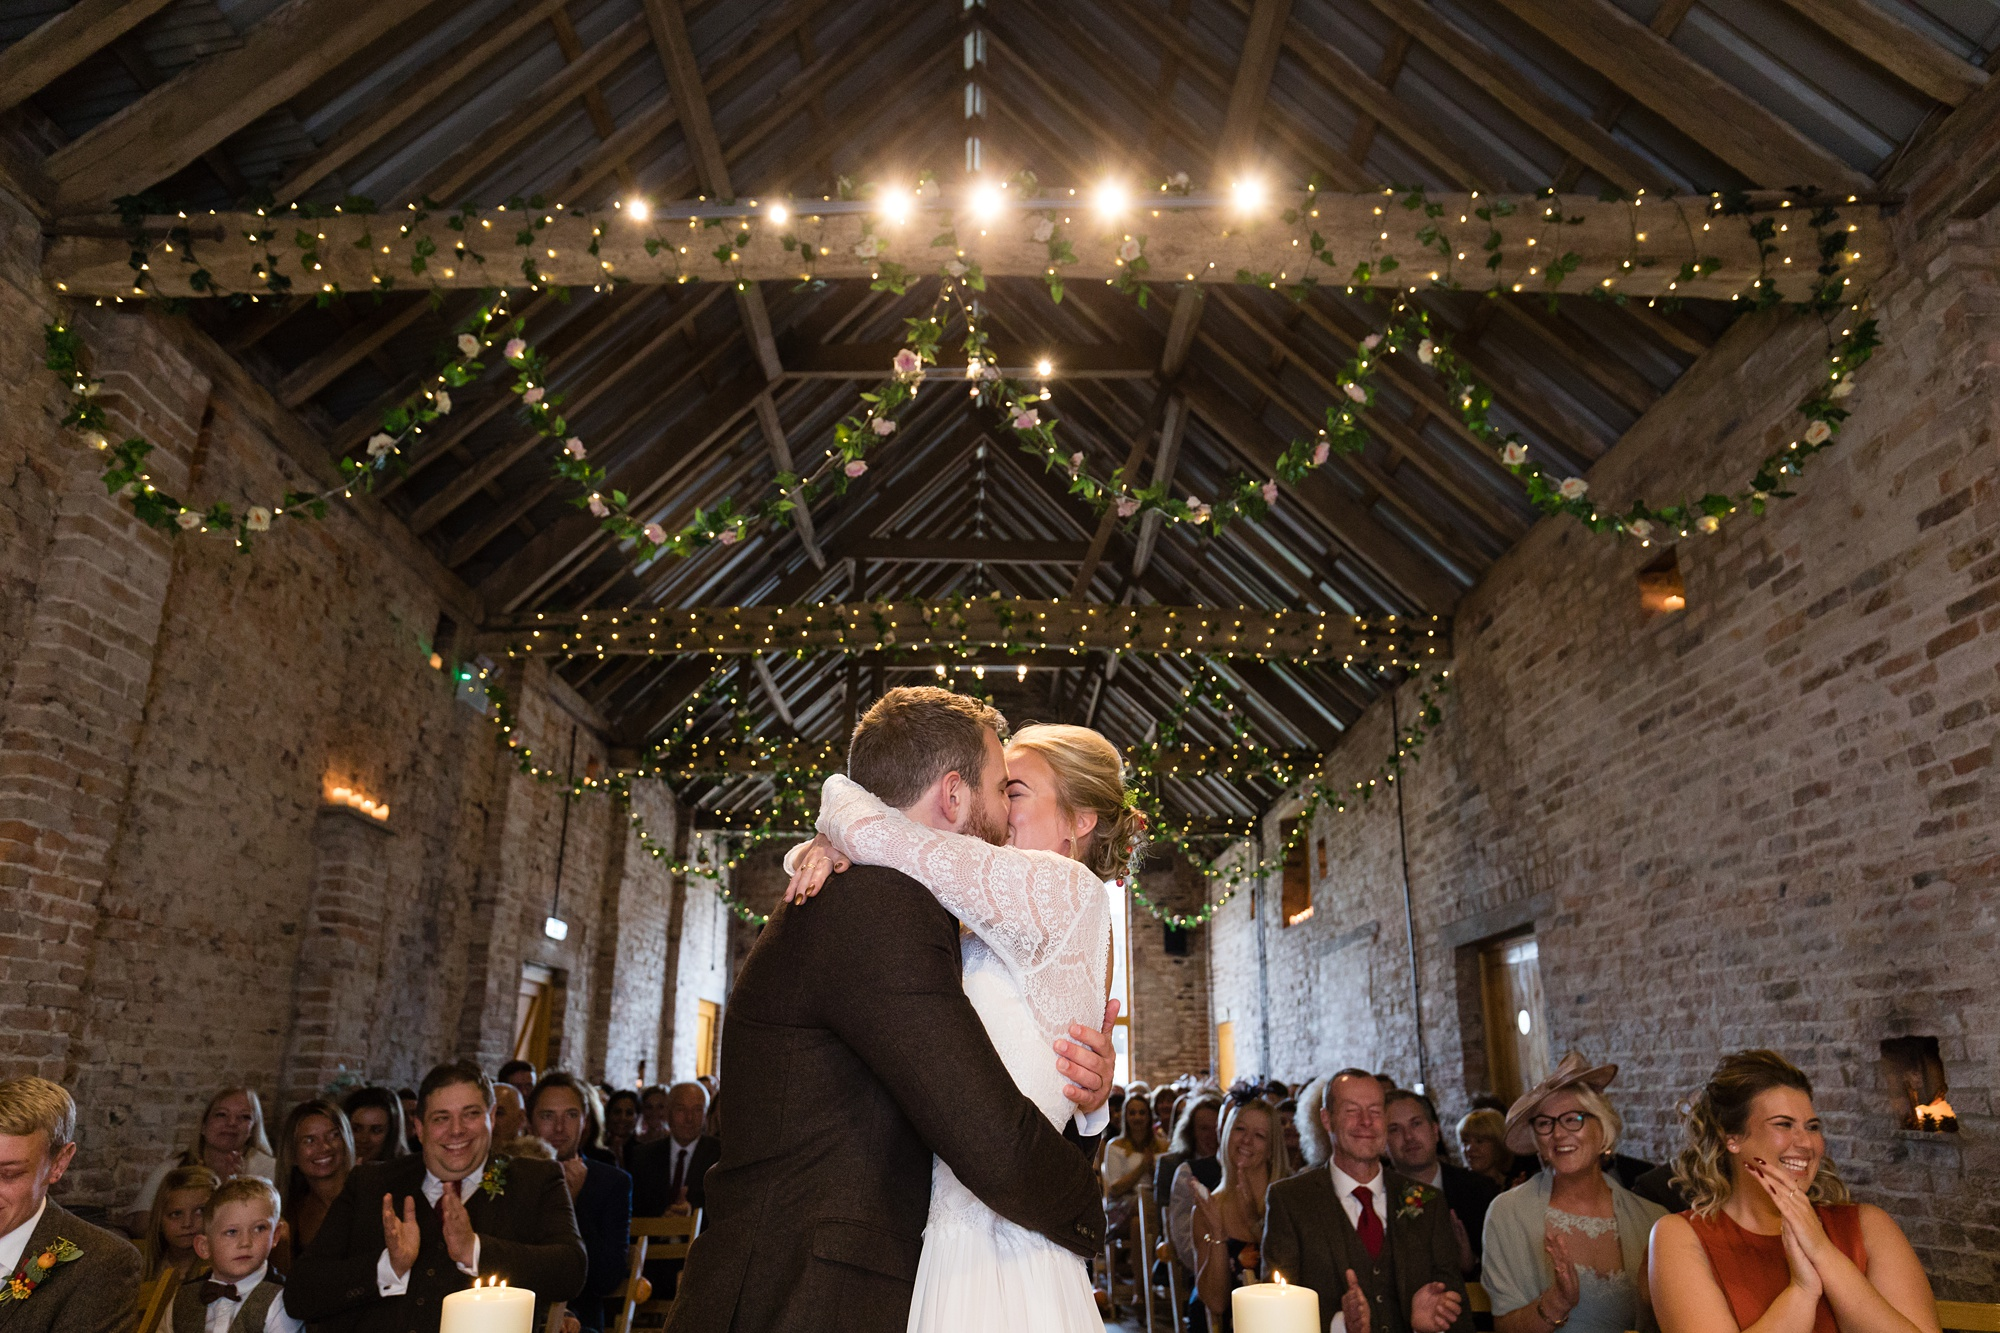 Yorkshire Wedding Photographers at Barmbyfield Barn big first kiss under fairy lights